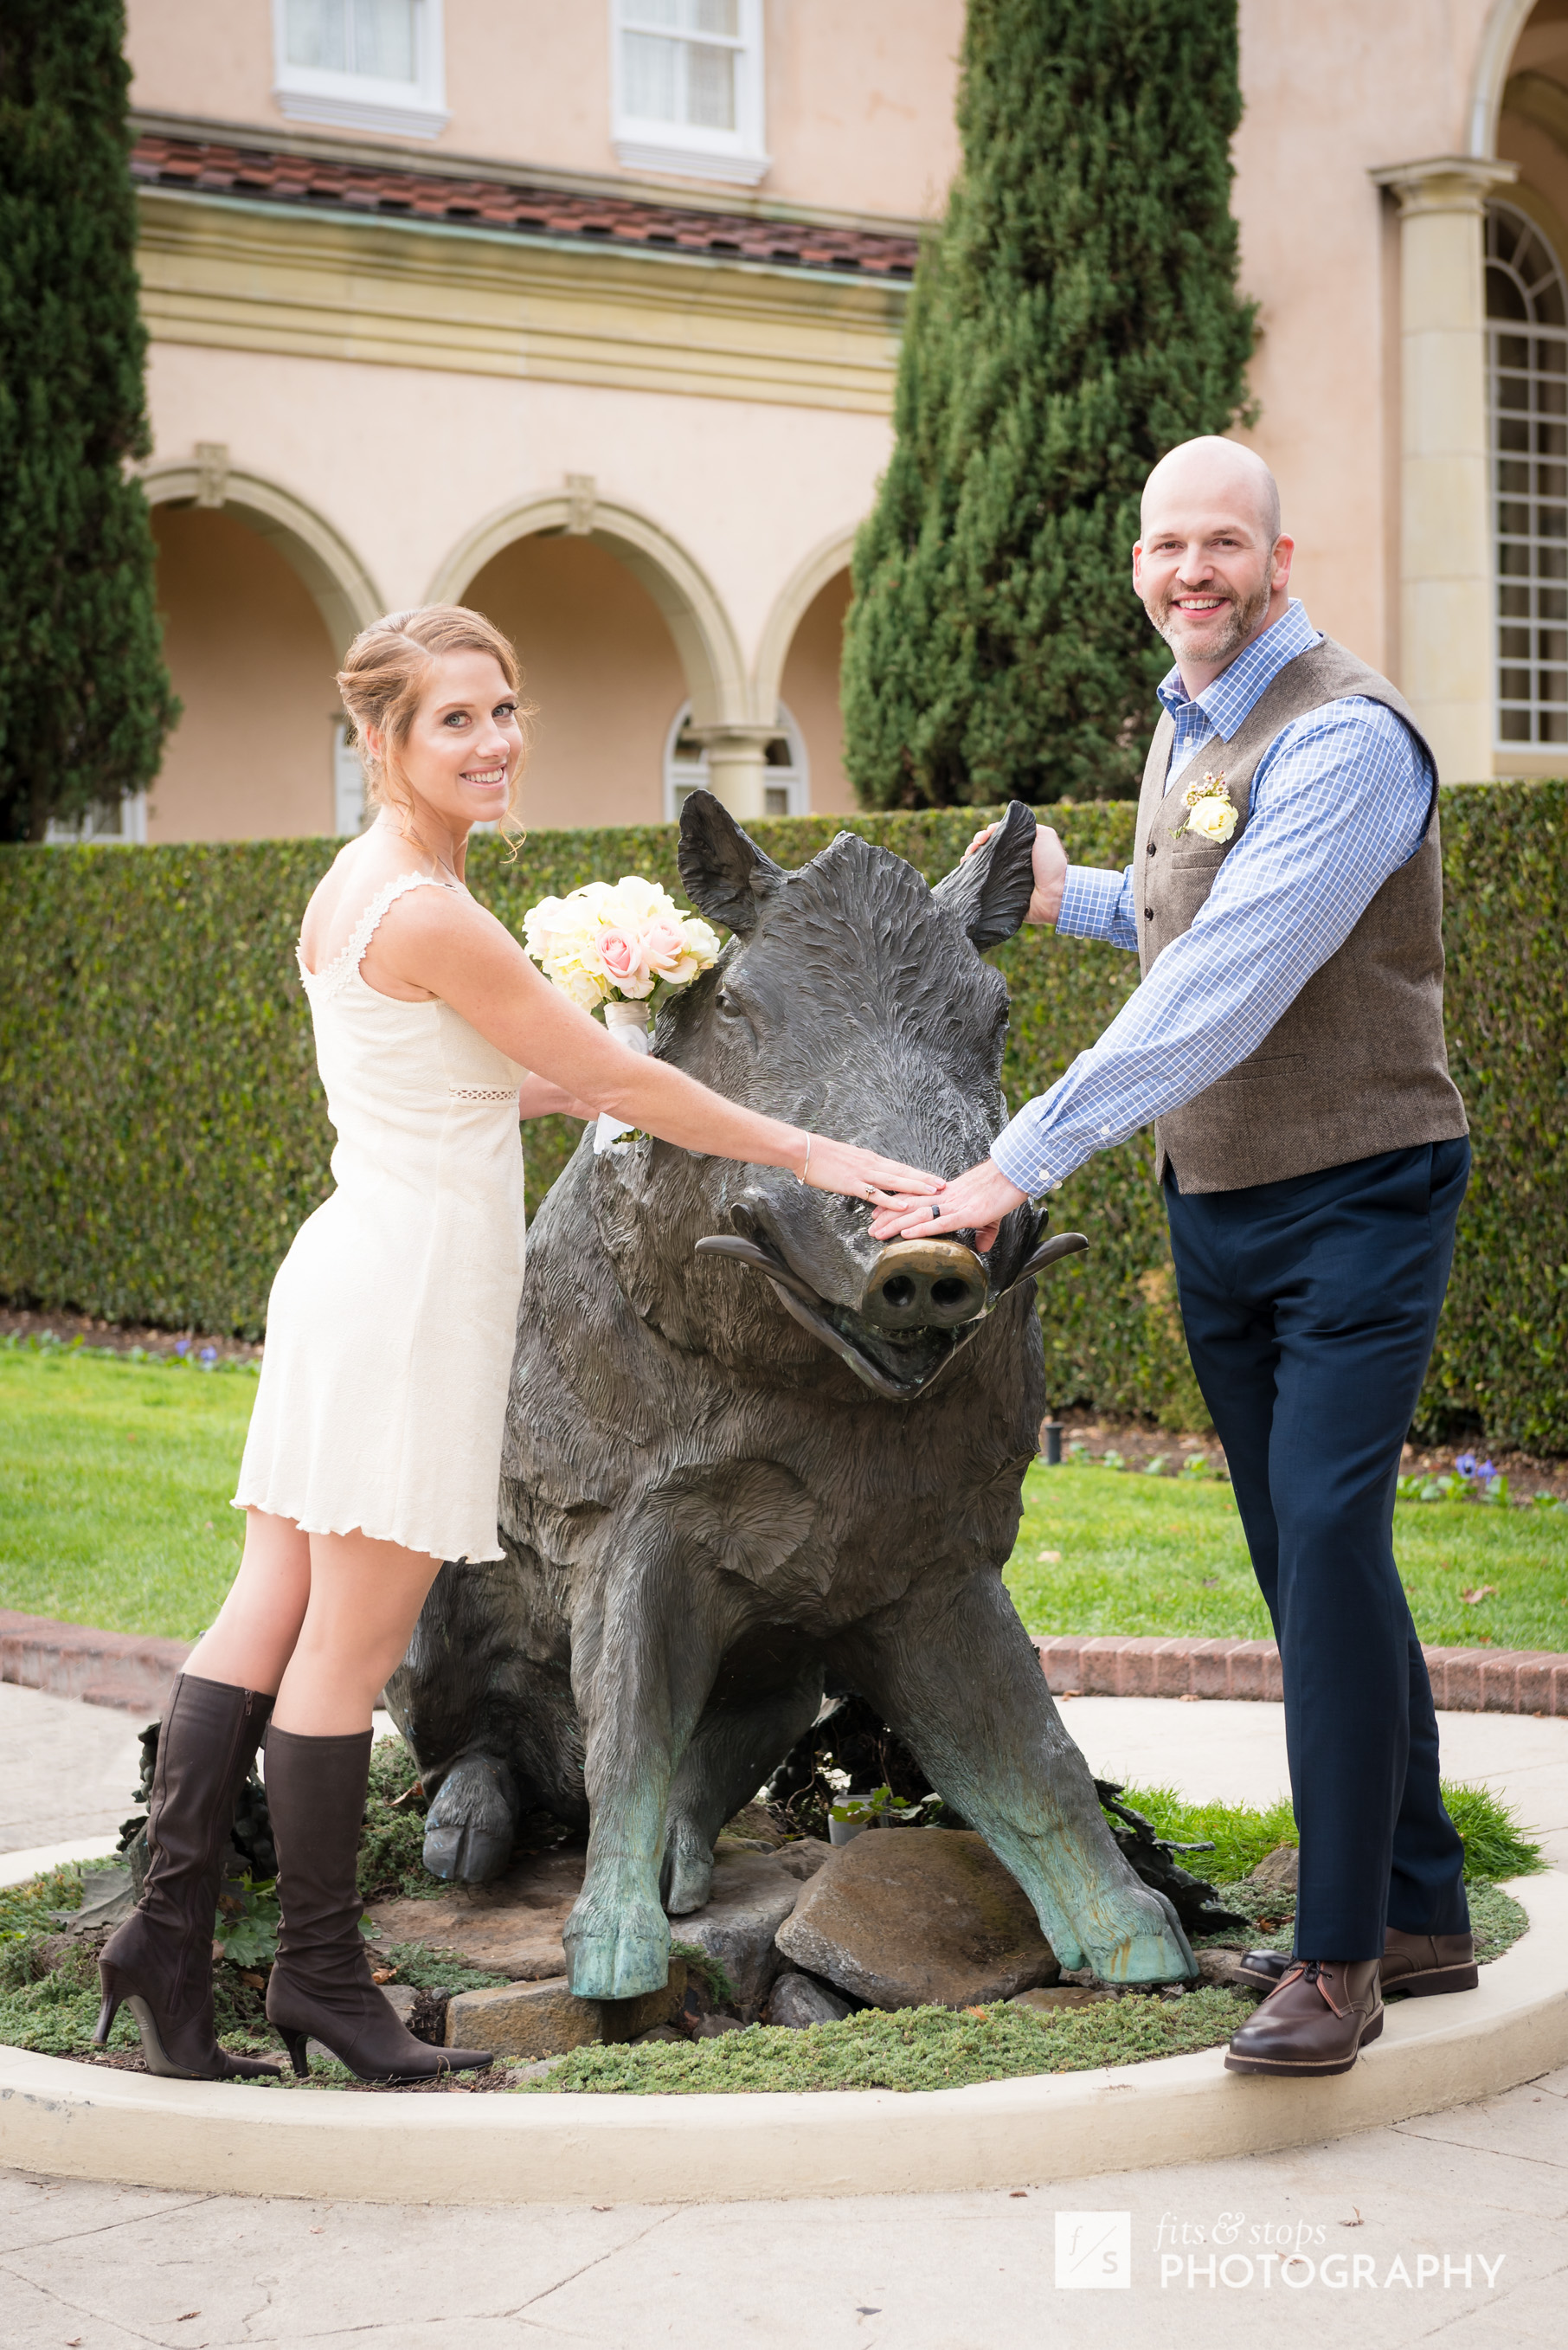 """A newly married bride and groom stroke the snout of a """"boardeaux"""", a bronze statue immortalized at the Ferrari-Carrano Winery."""